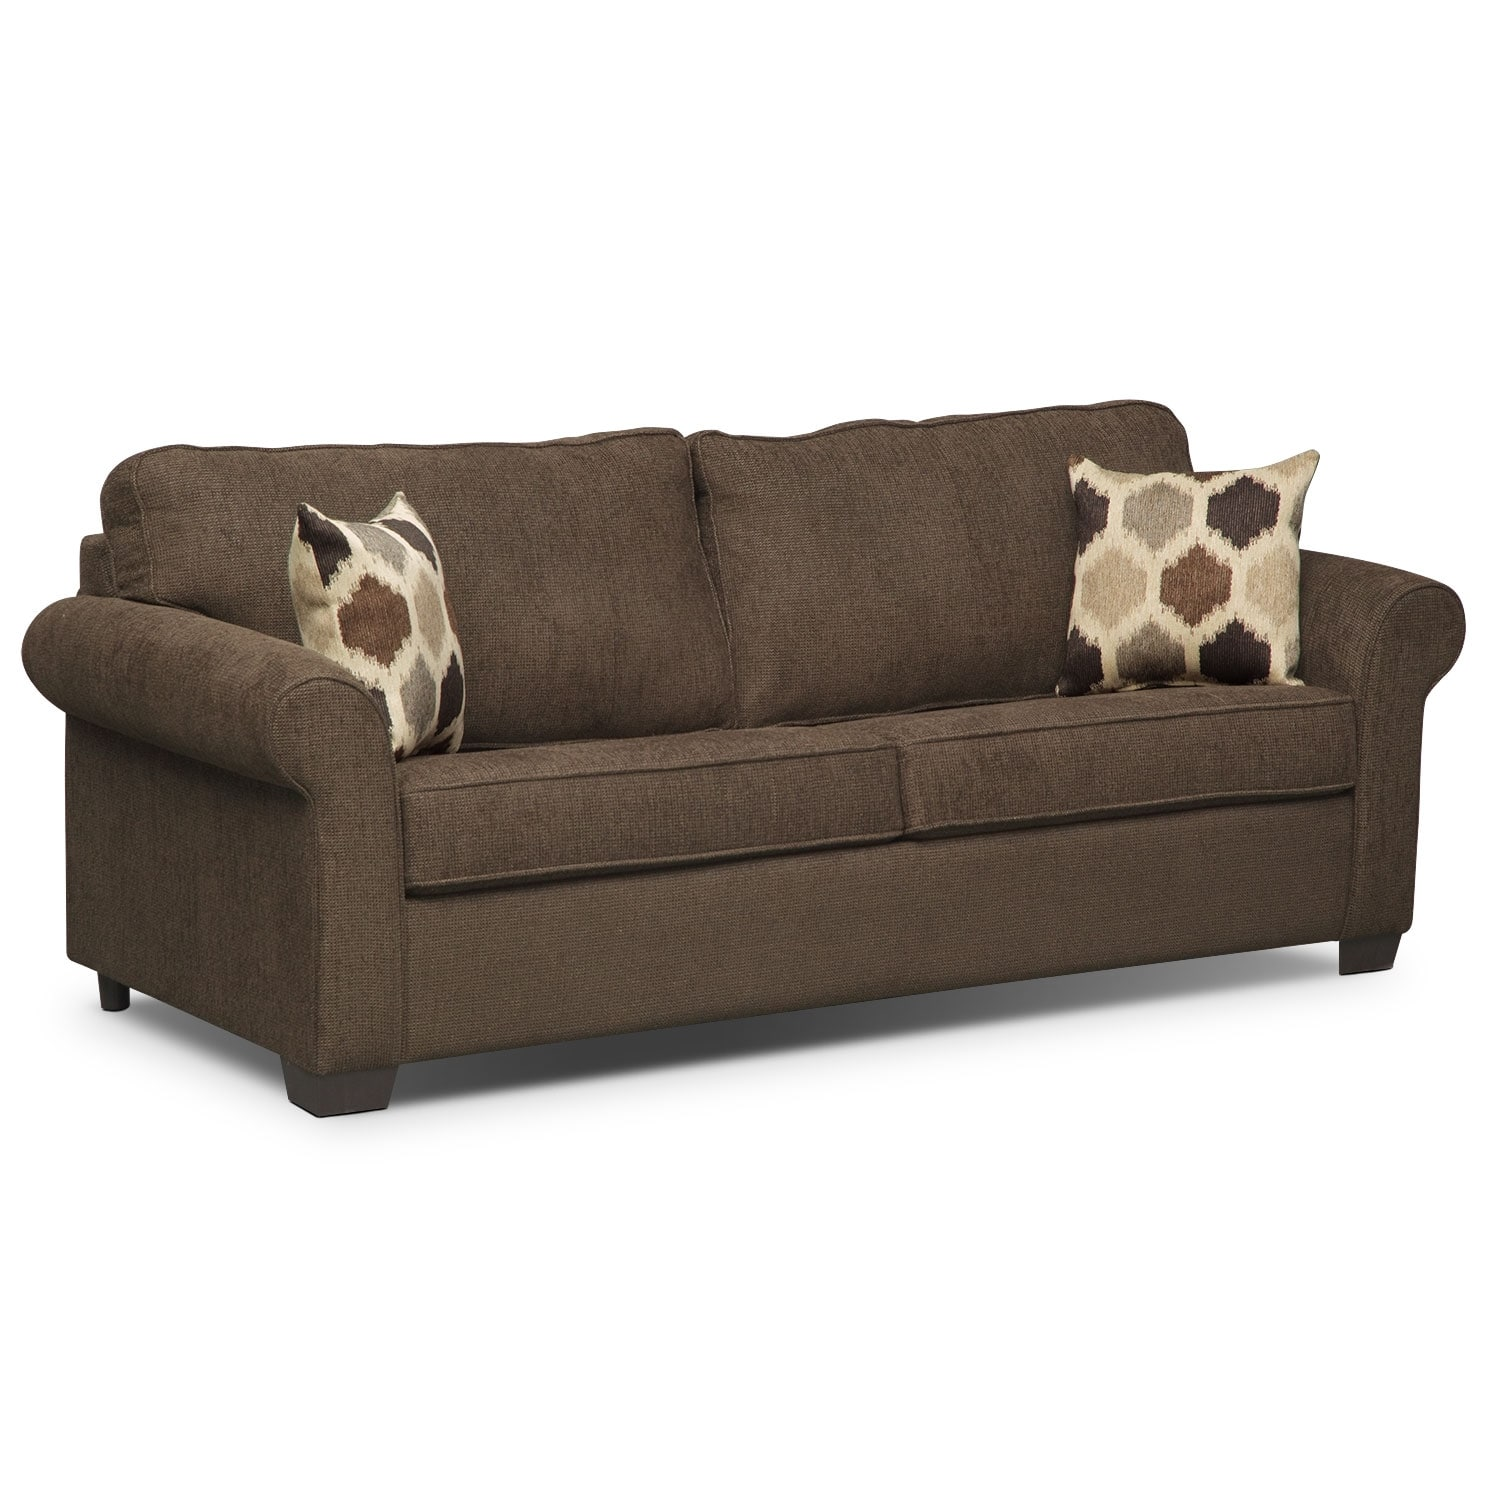 Fletcher Queen Memory Foam Sleeper Sofa Chocolate Value City Furniture